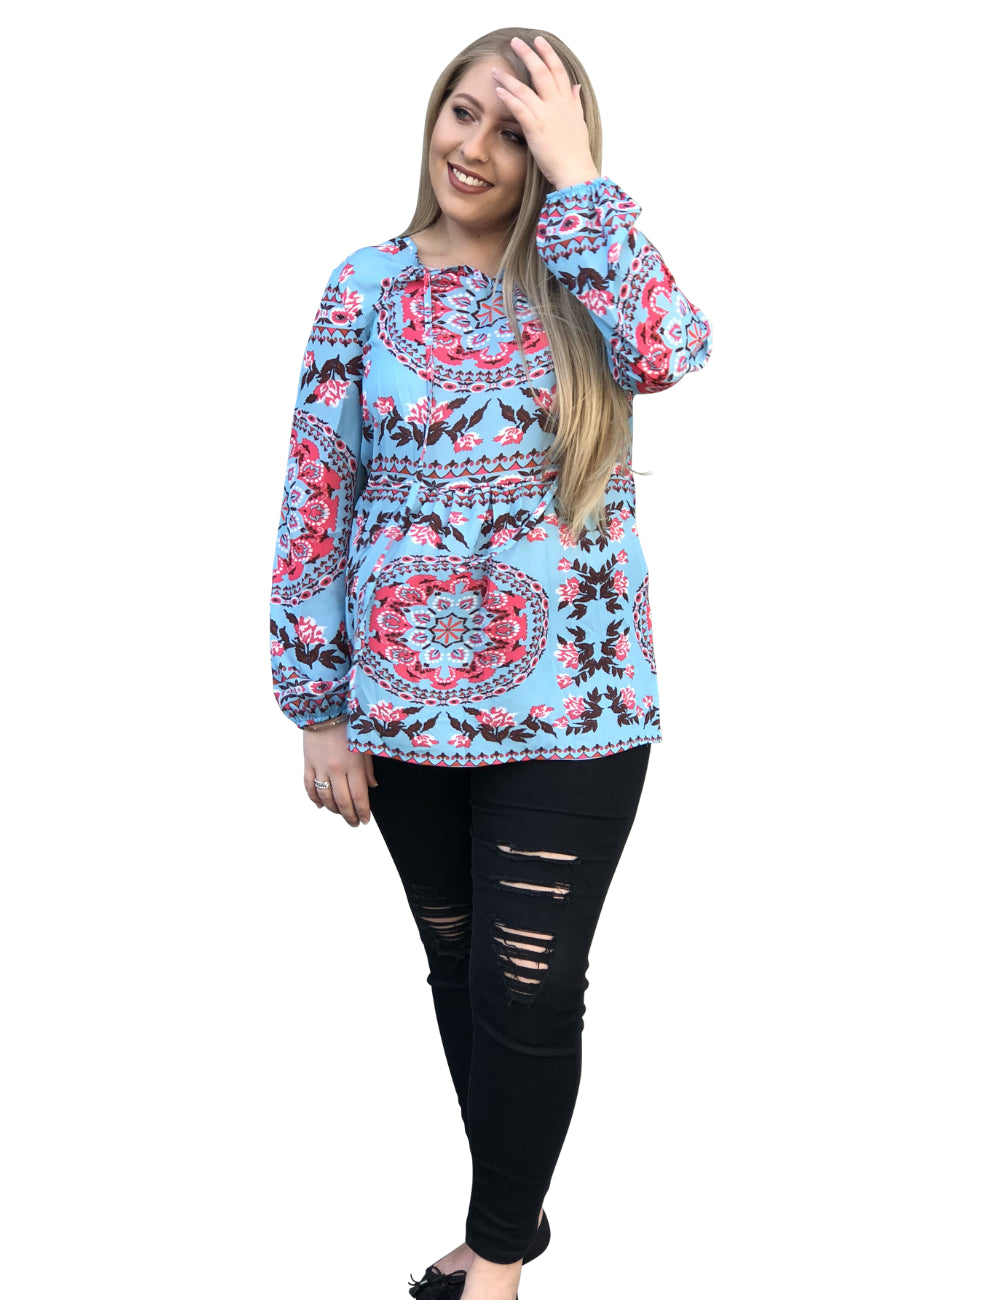 plus size Blouse & Shirt L / AUS 14 / Multi Skye Bohemian Top - CLEARANCE